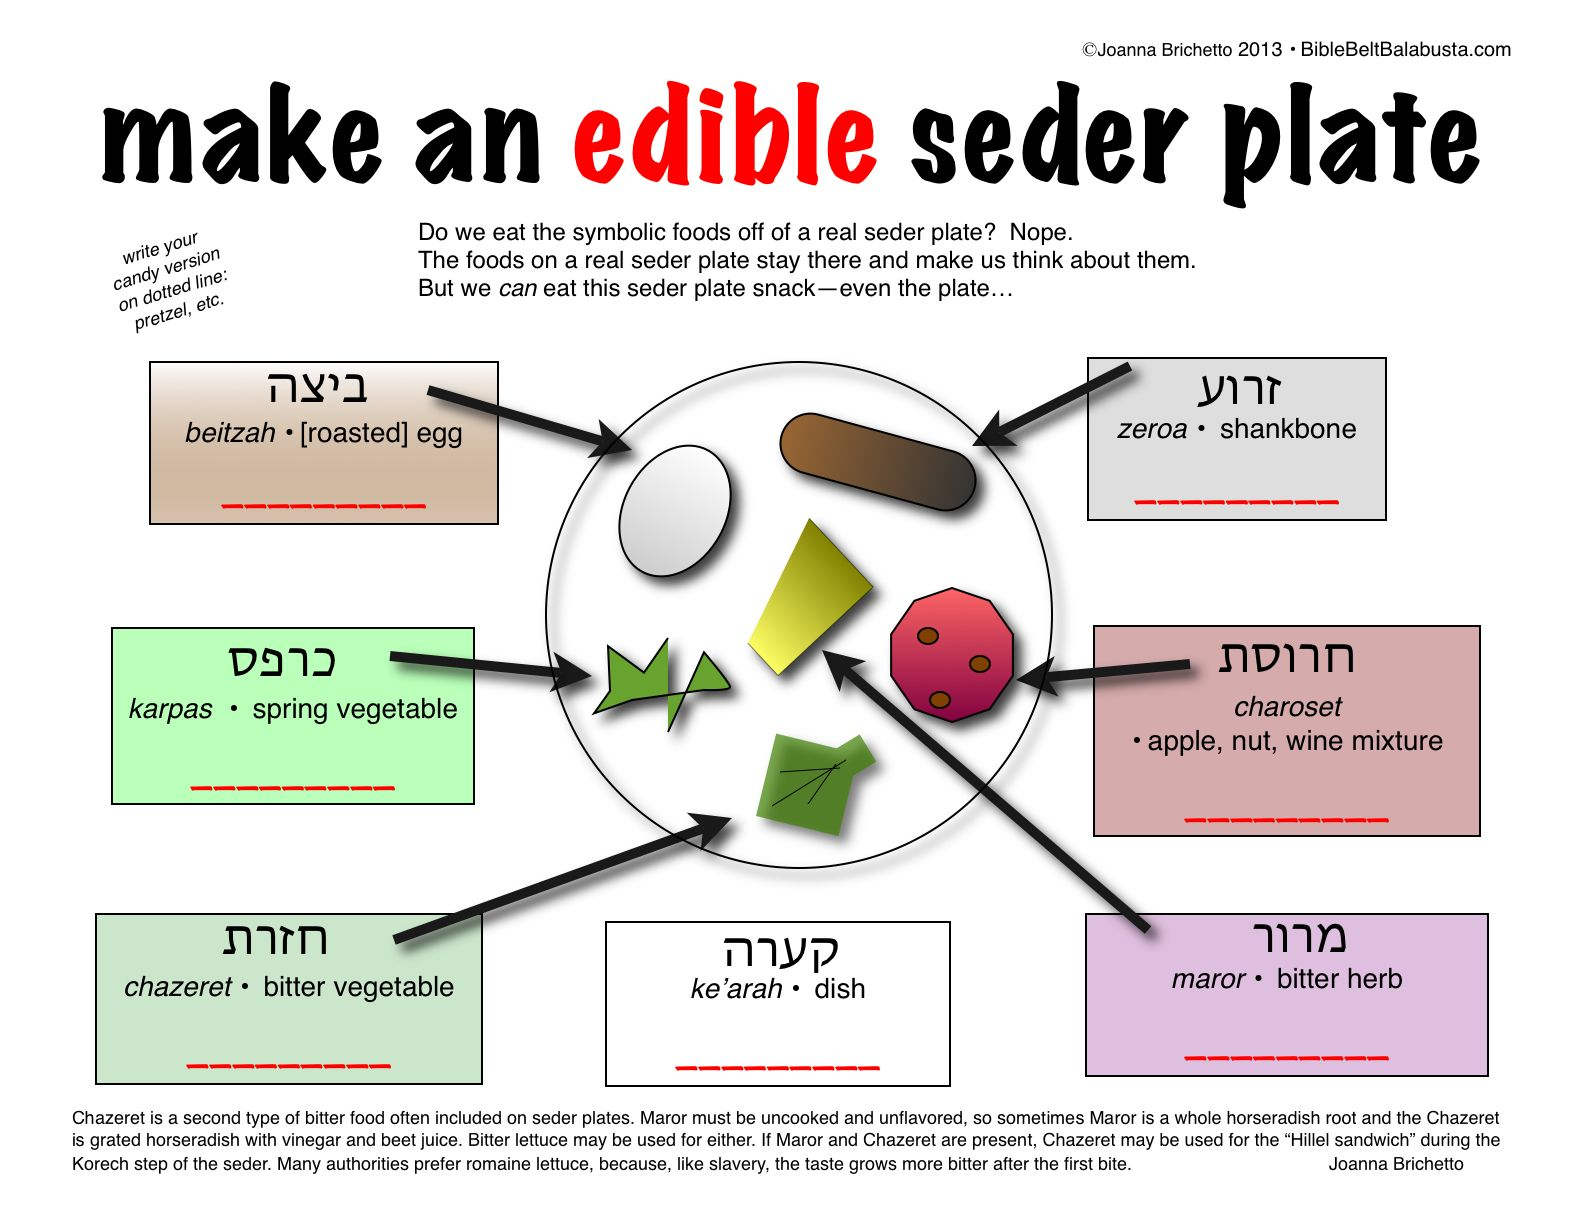 worksheet The Seder Plate Worksheet make an edible seder plate printable fill in with your choice of bible belt balabustas for activities the substitution you will use